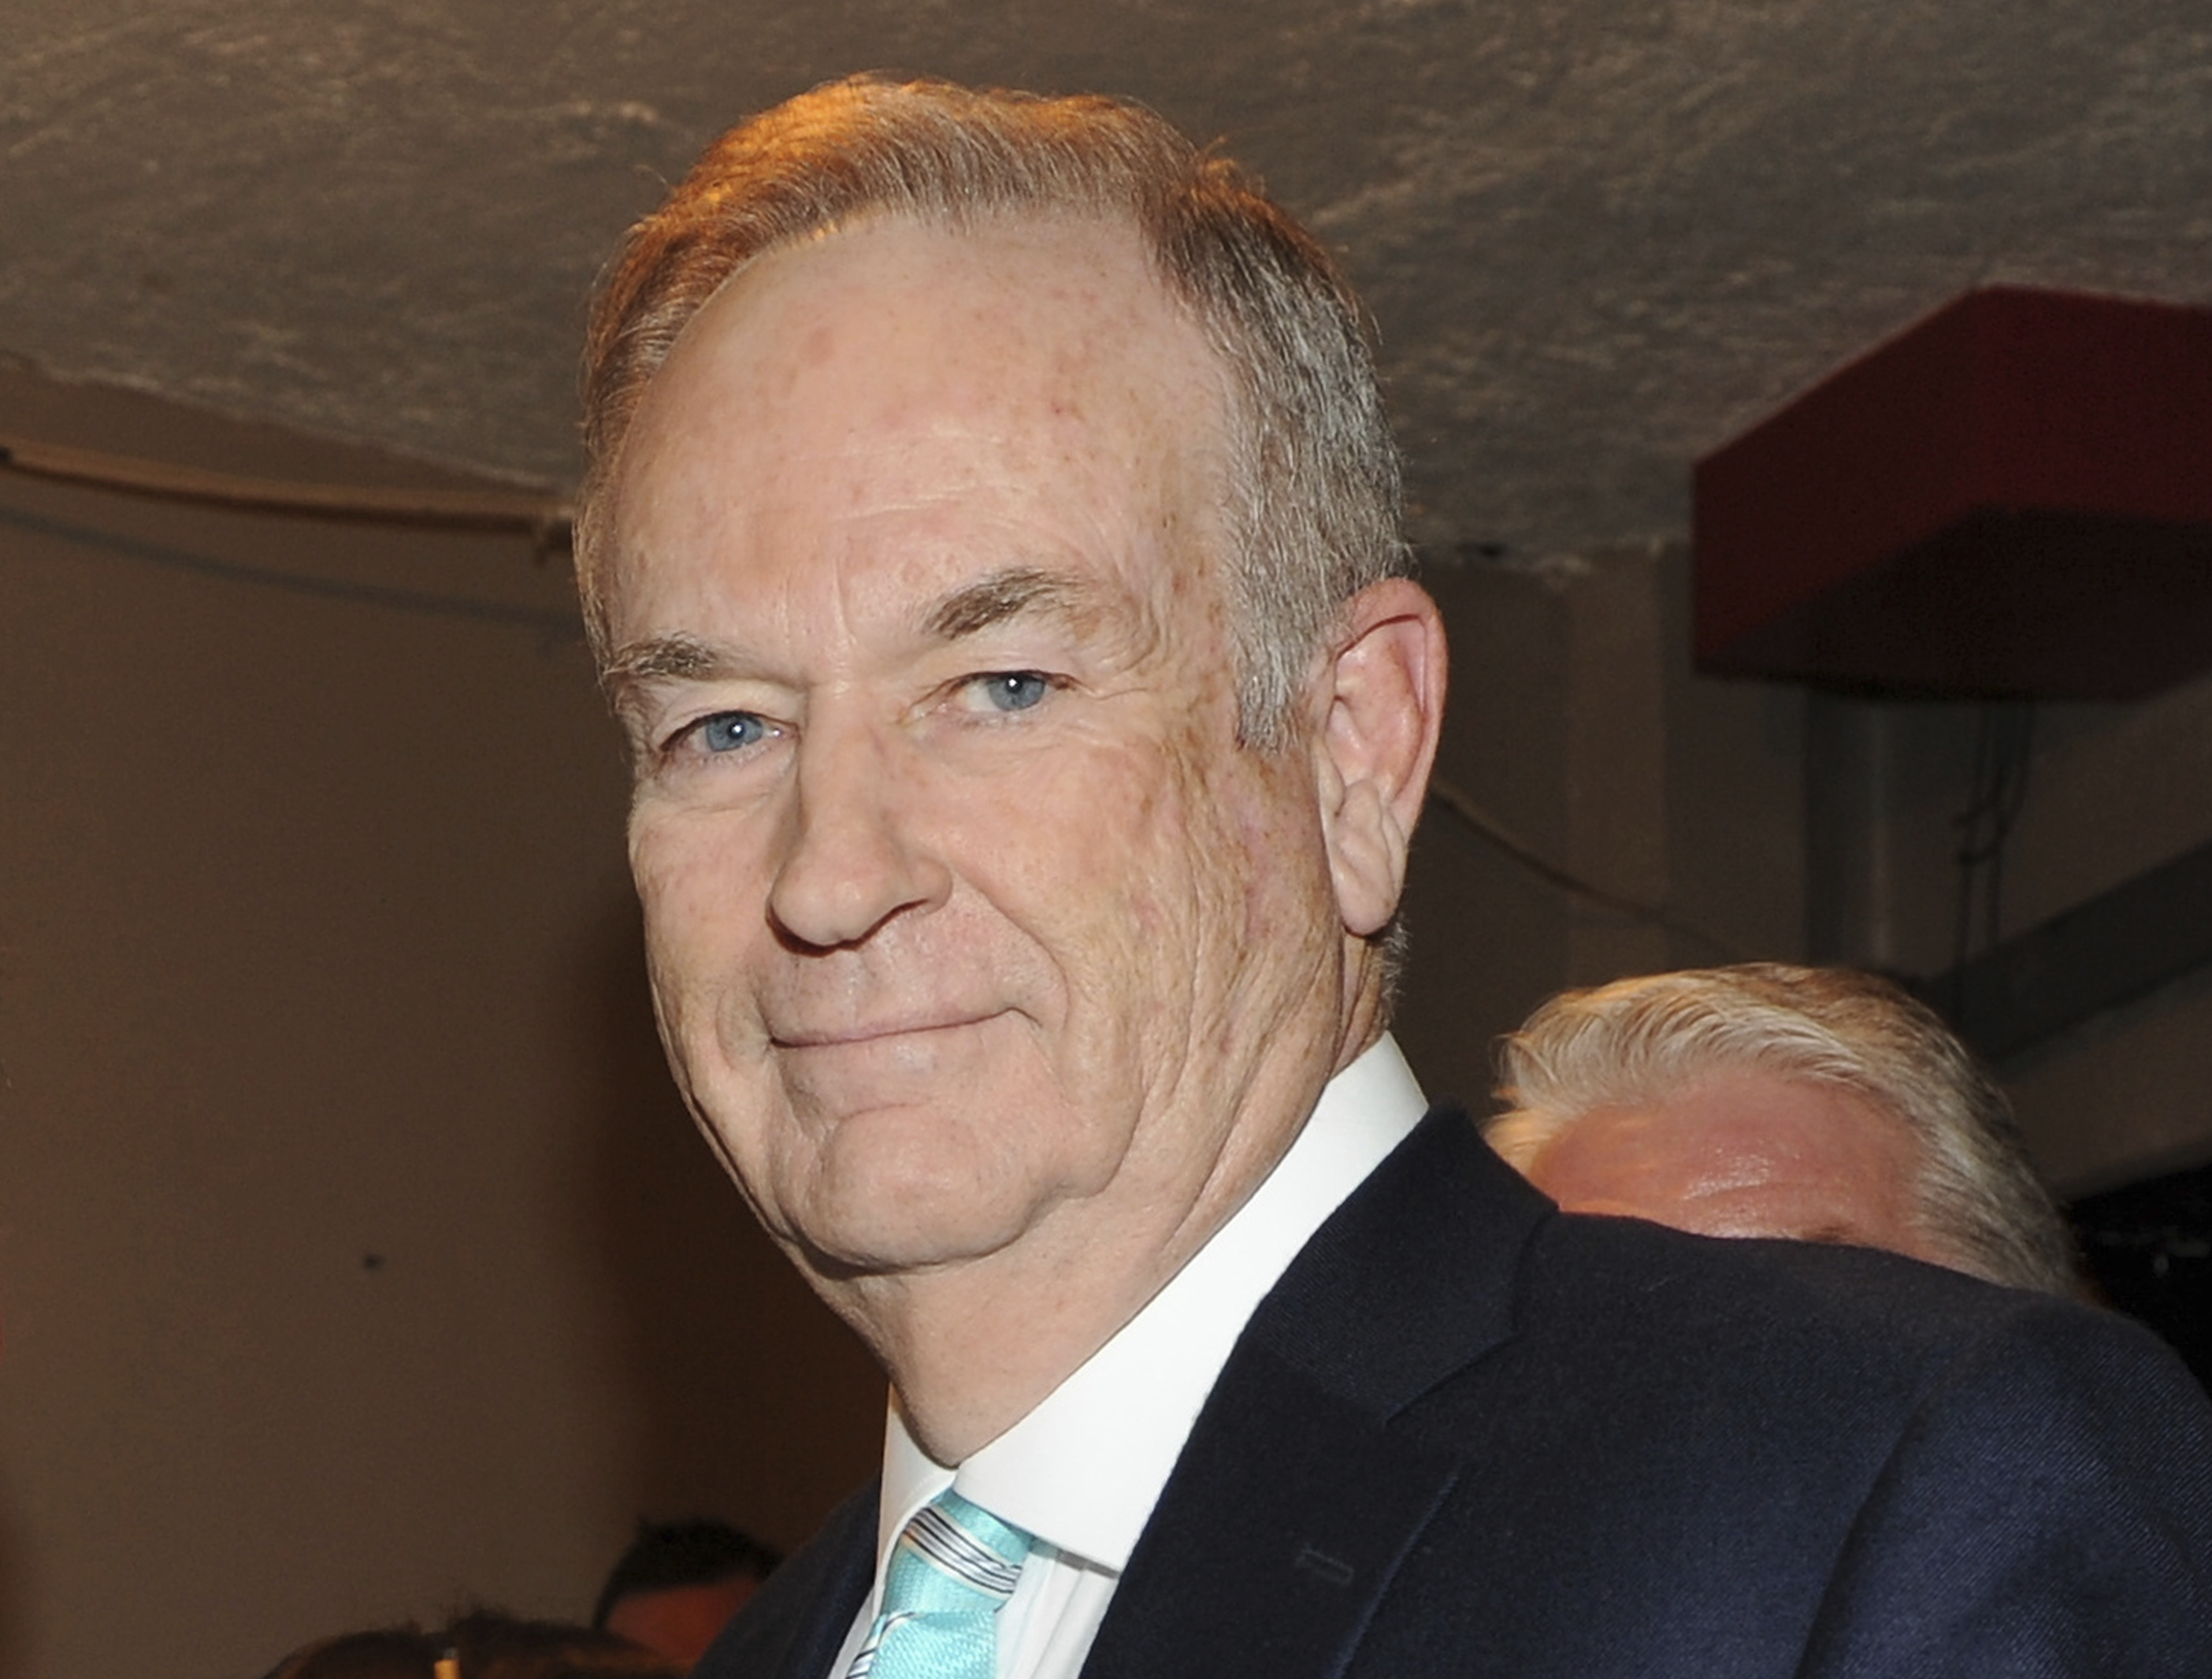 "FILE - This Oct. 13, 2012 file photo shows Fox News commentator and author Bill O'Reilly at the Comedy Central ""Night Of Too Many Stars: America Comes Together For Autism Programs"" at the Beacon Theatre in New York. O'Reilly has lost his job at Fox News Channel following reports that five women had been paid millions of dollars to keep quiet about harassment allegations. 21st Century Fox issued a statement Wednesday, April 19, 2017, that ""after a thorough and careful review of the allegations, the company and Bill O'Reilly have agreed that Bill O'Reilly will not be returning to the Fox News Channel.  (Photo by Frank Micelotta/Invsion/AP, File)"